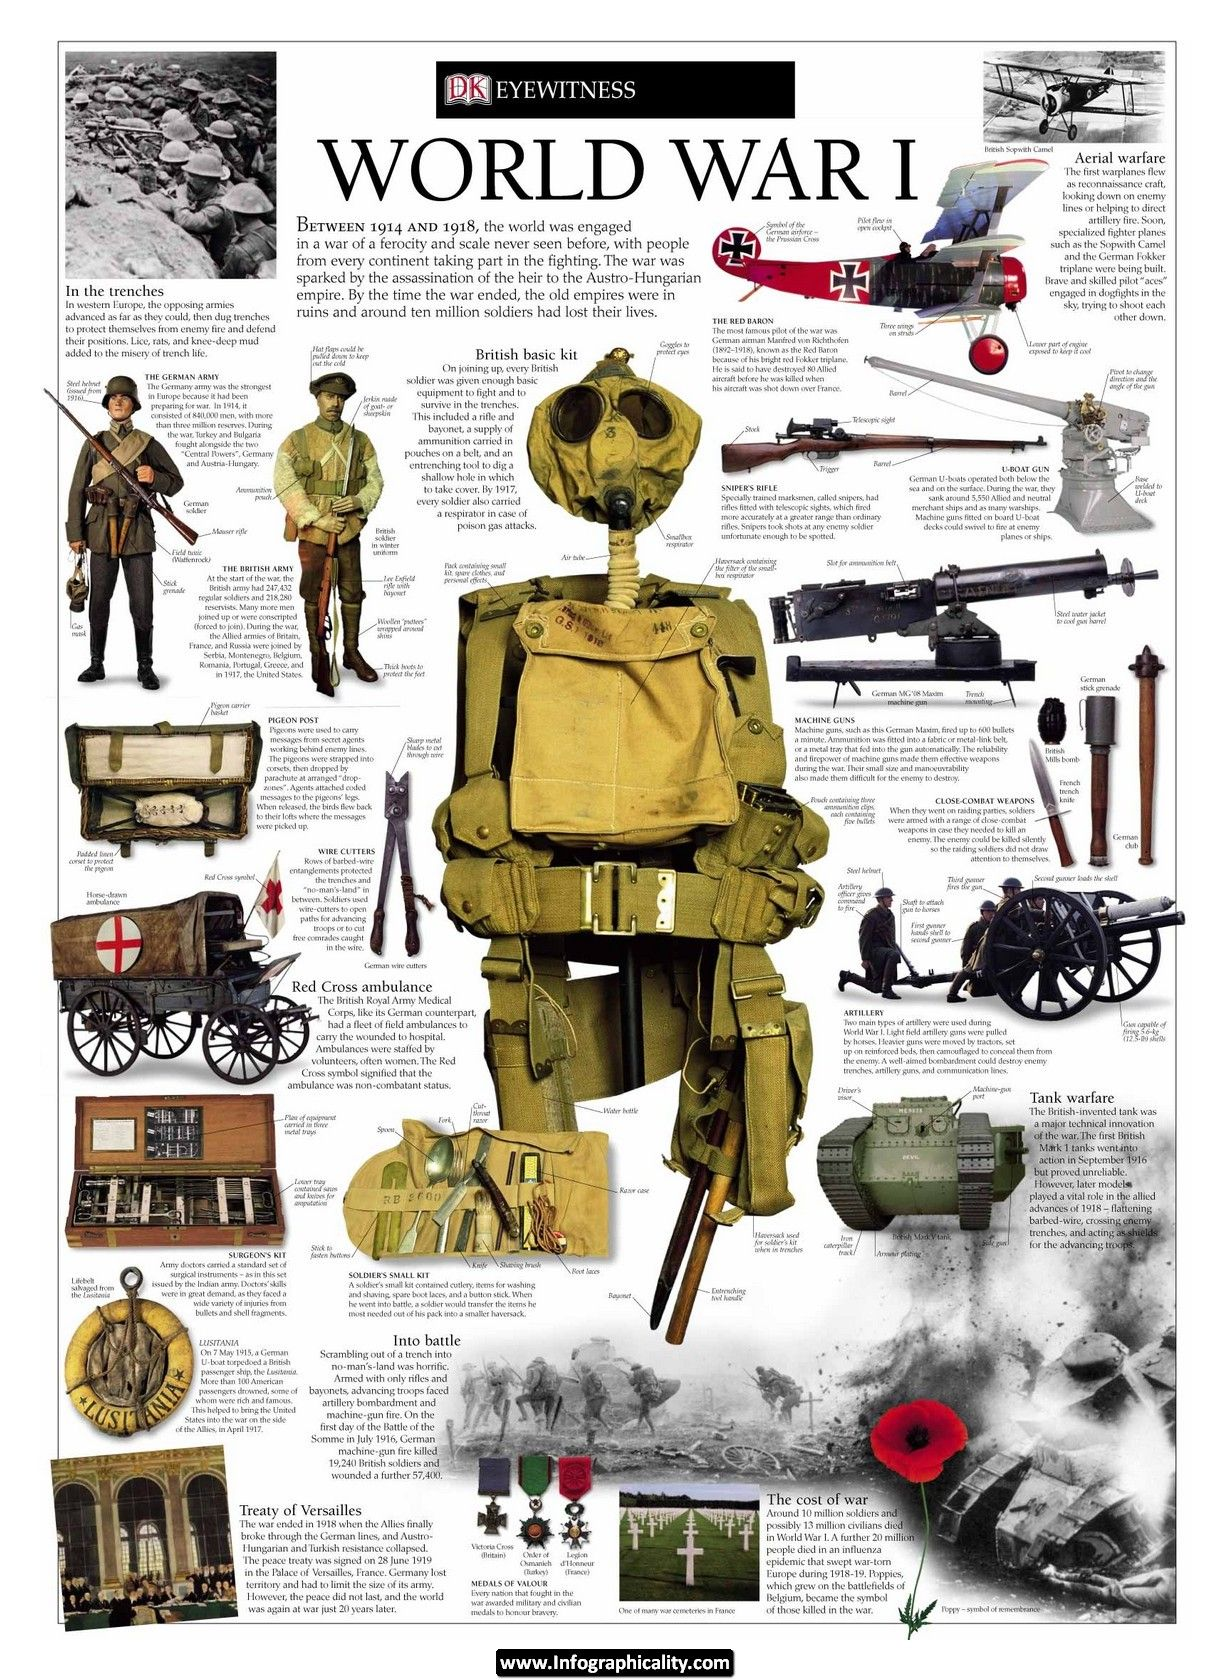 About World War I Infographic